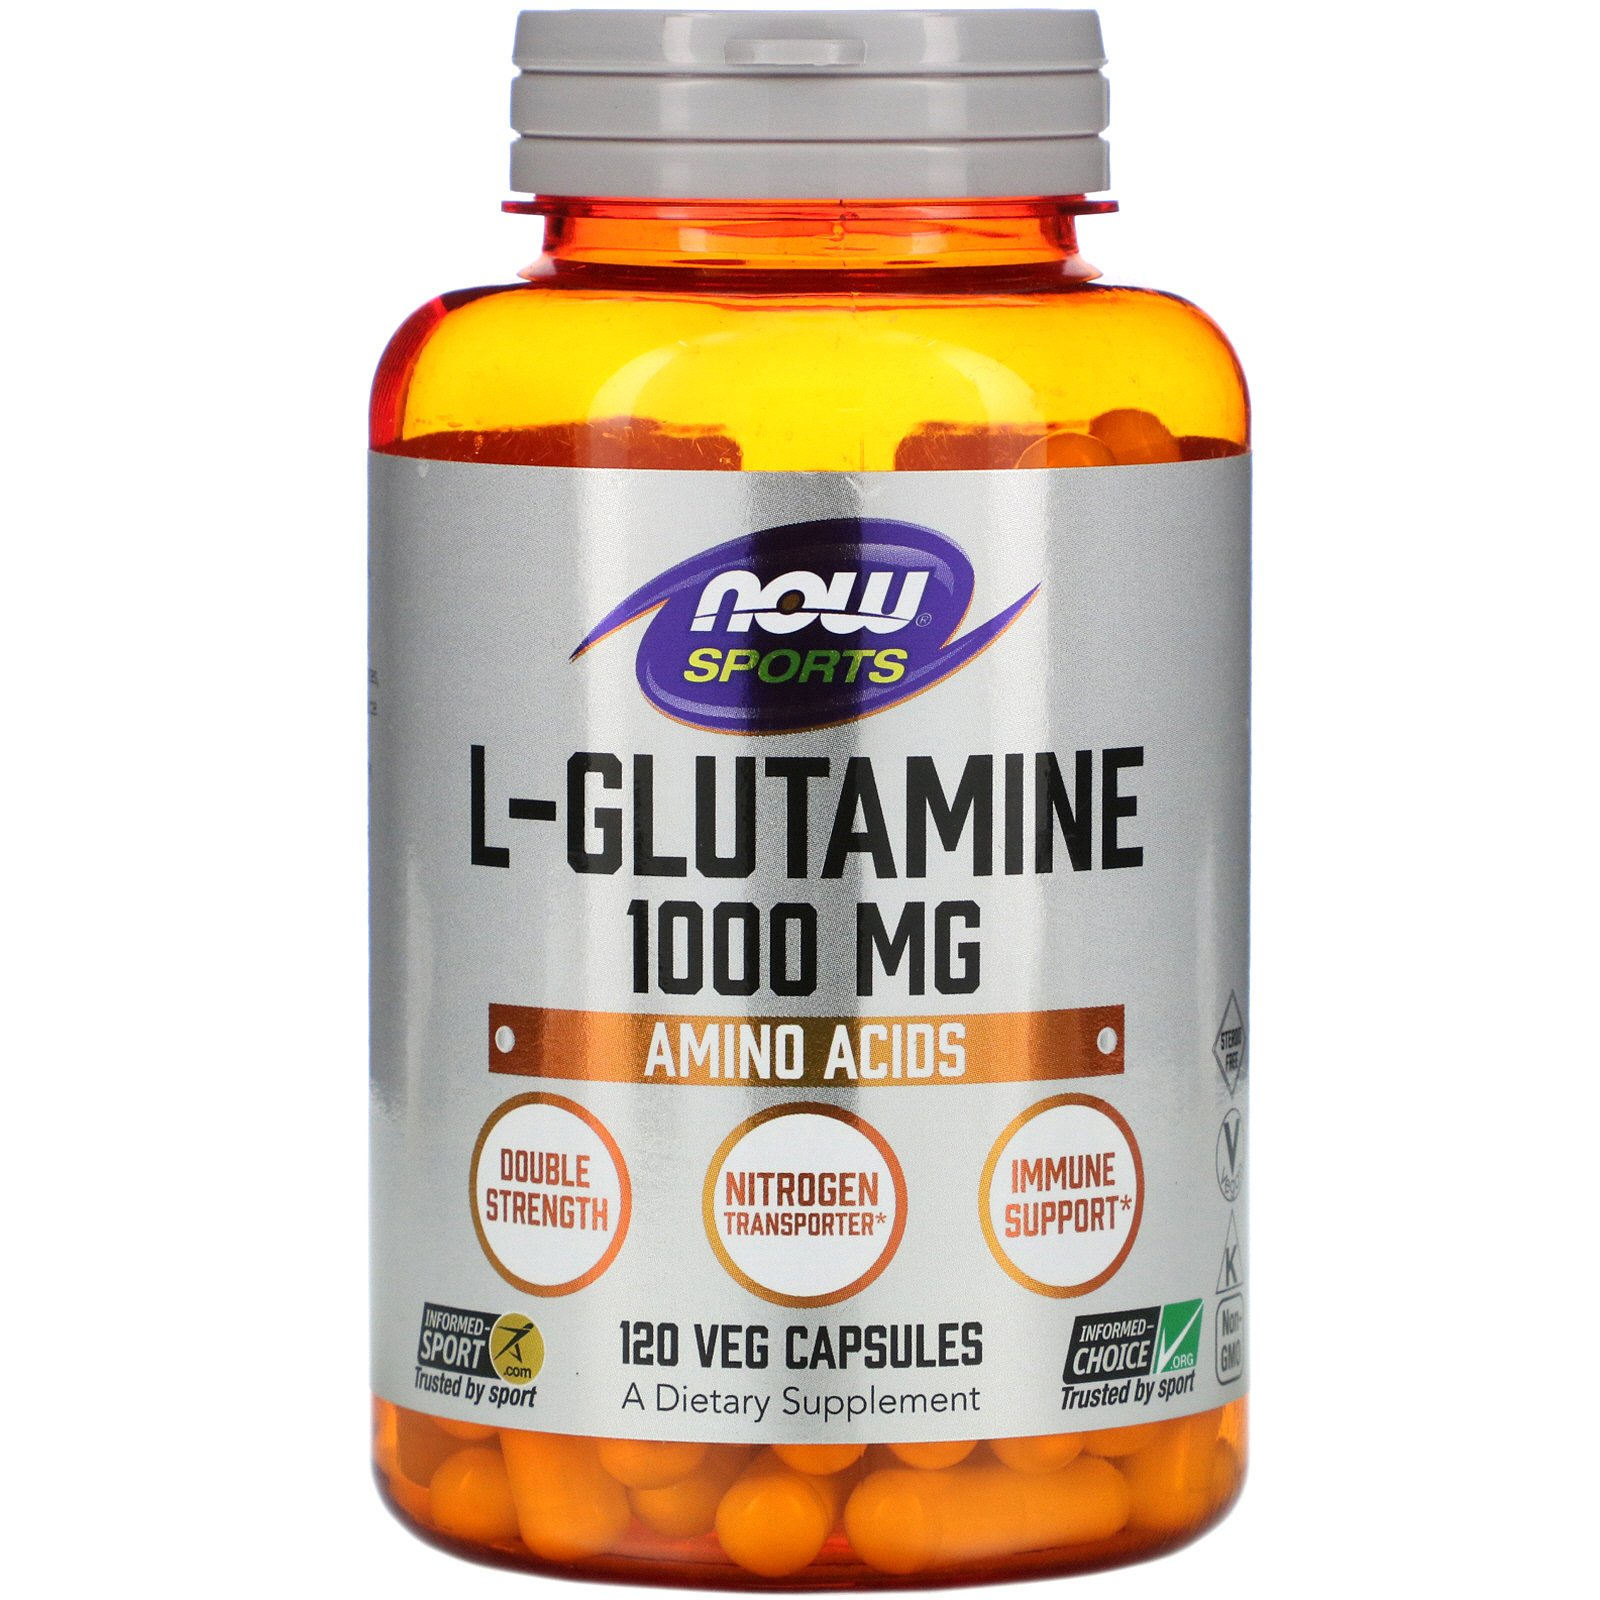 NOW L-Glutamine, L-Глутамин 1000 мг - 120 капсул